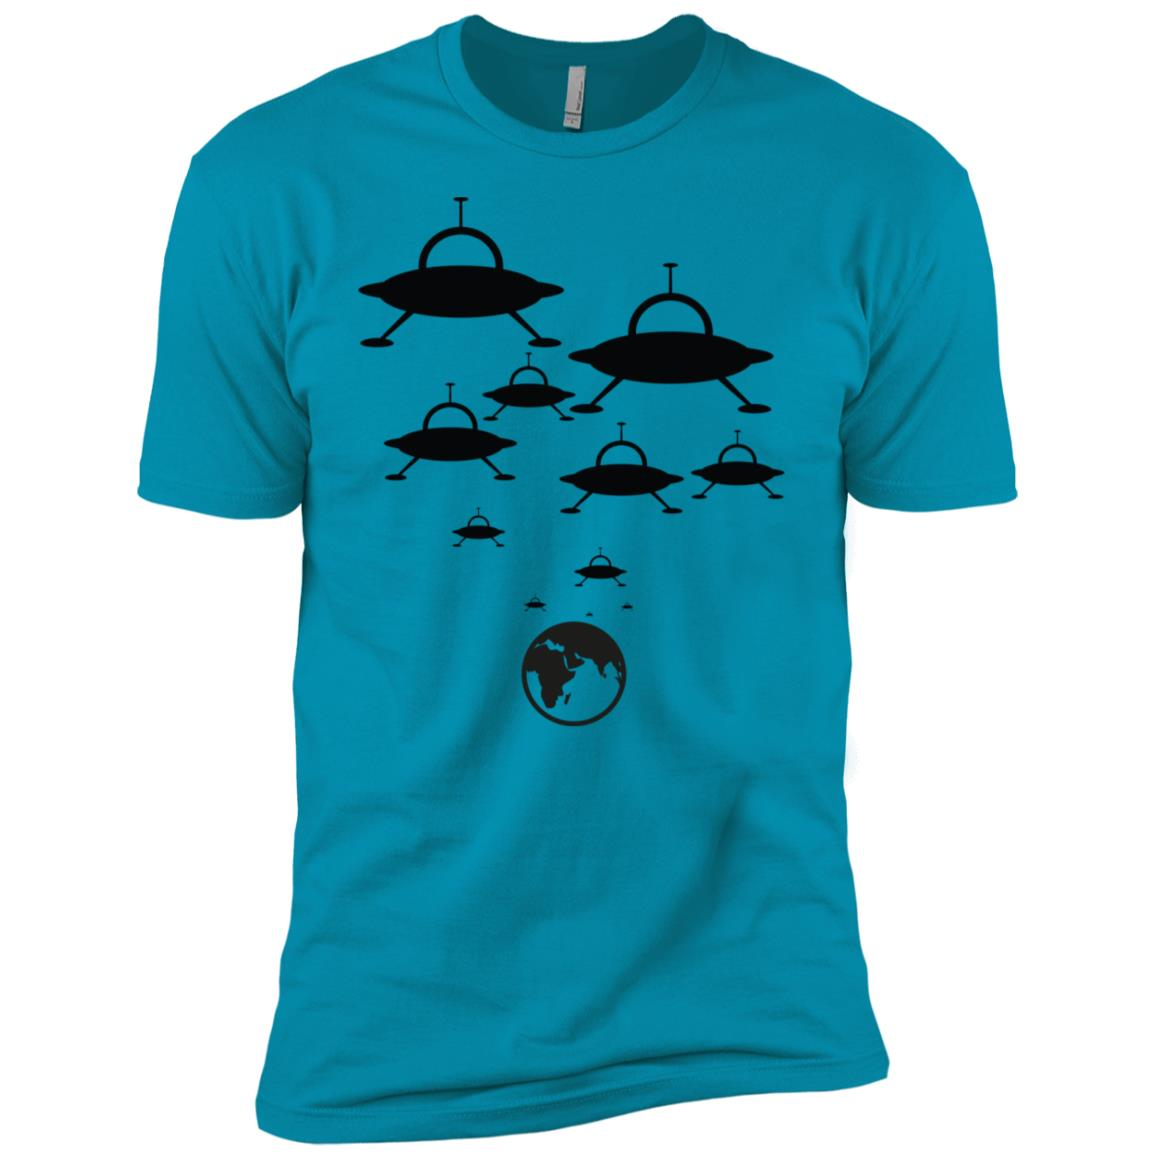 Alien Spaceships Landing On The Earth Ufo Funny -1 Men Short Sleeve T-Shirt